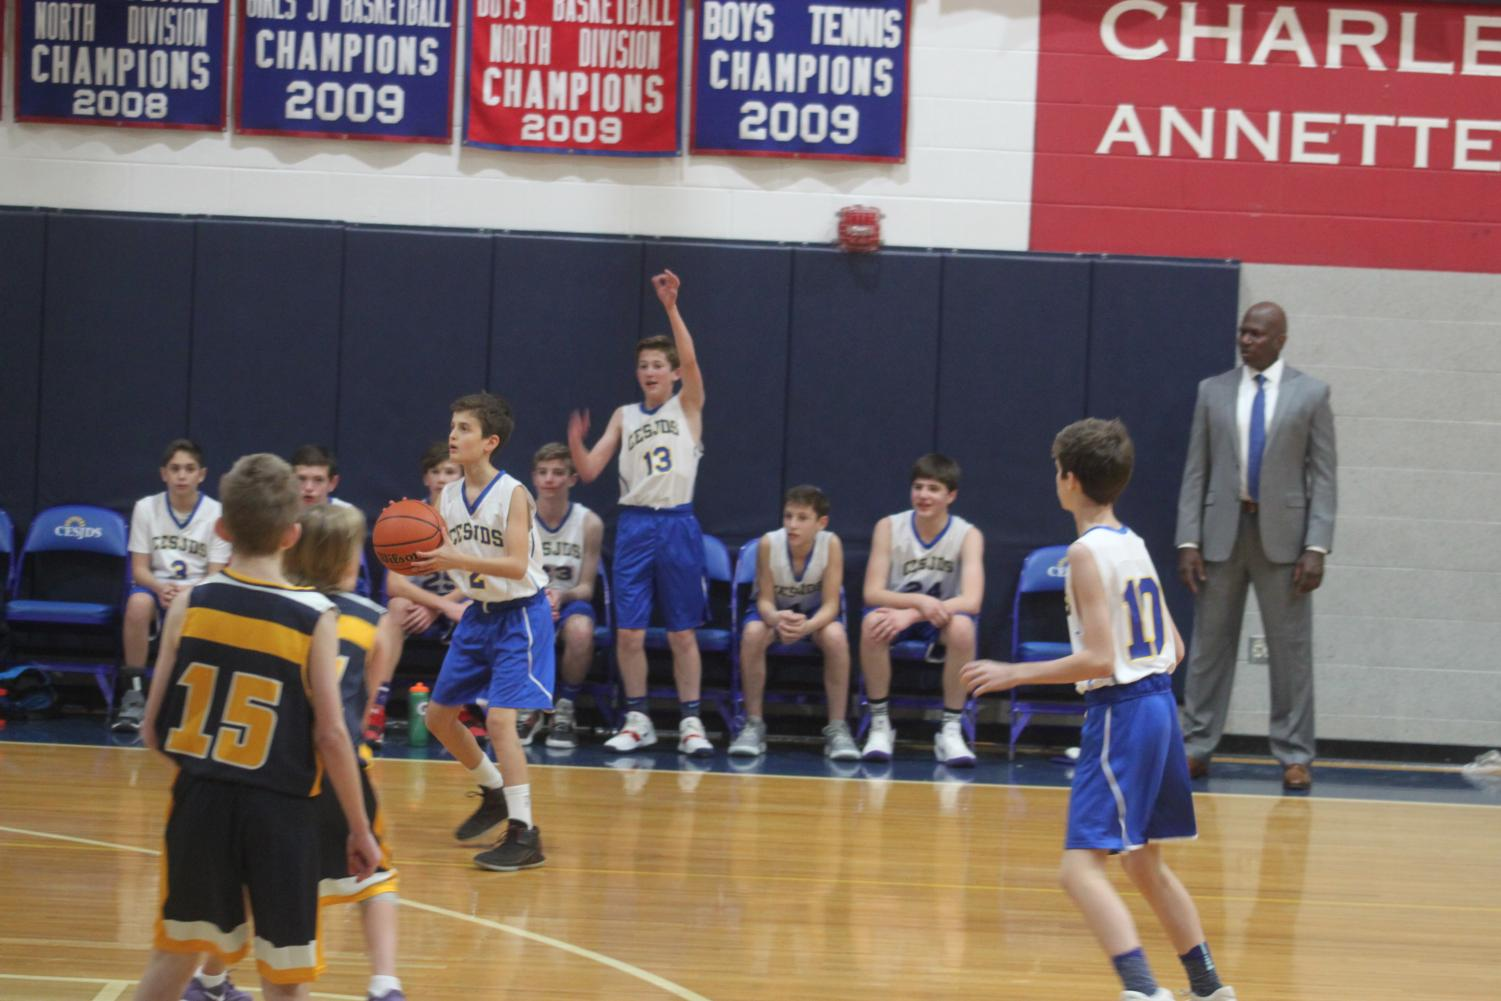 Wednesday's game against the Kendall score was a win for the Lions, but featured a poor performance.